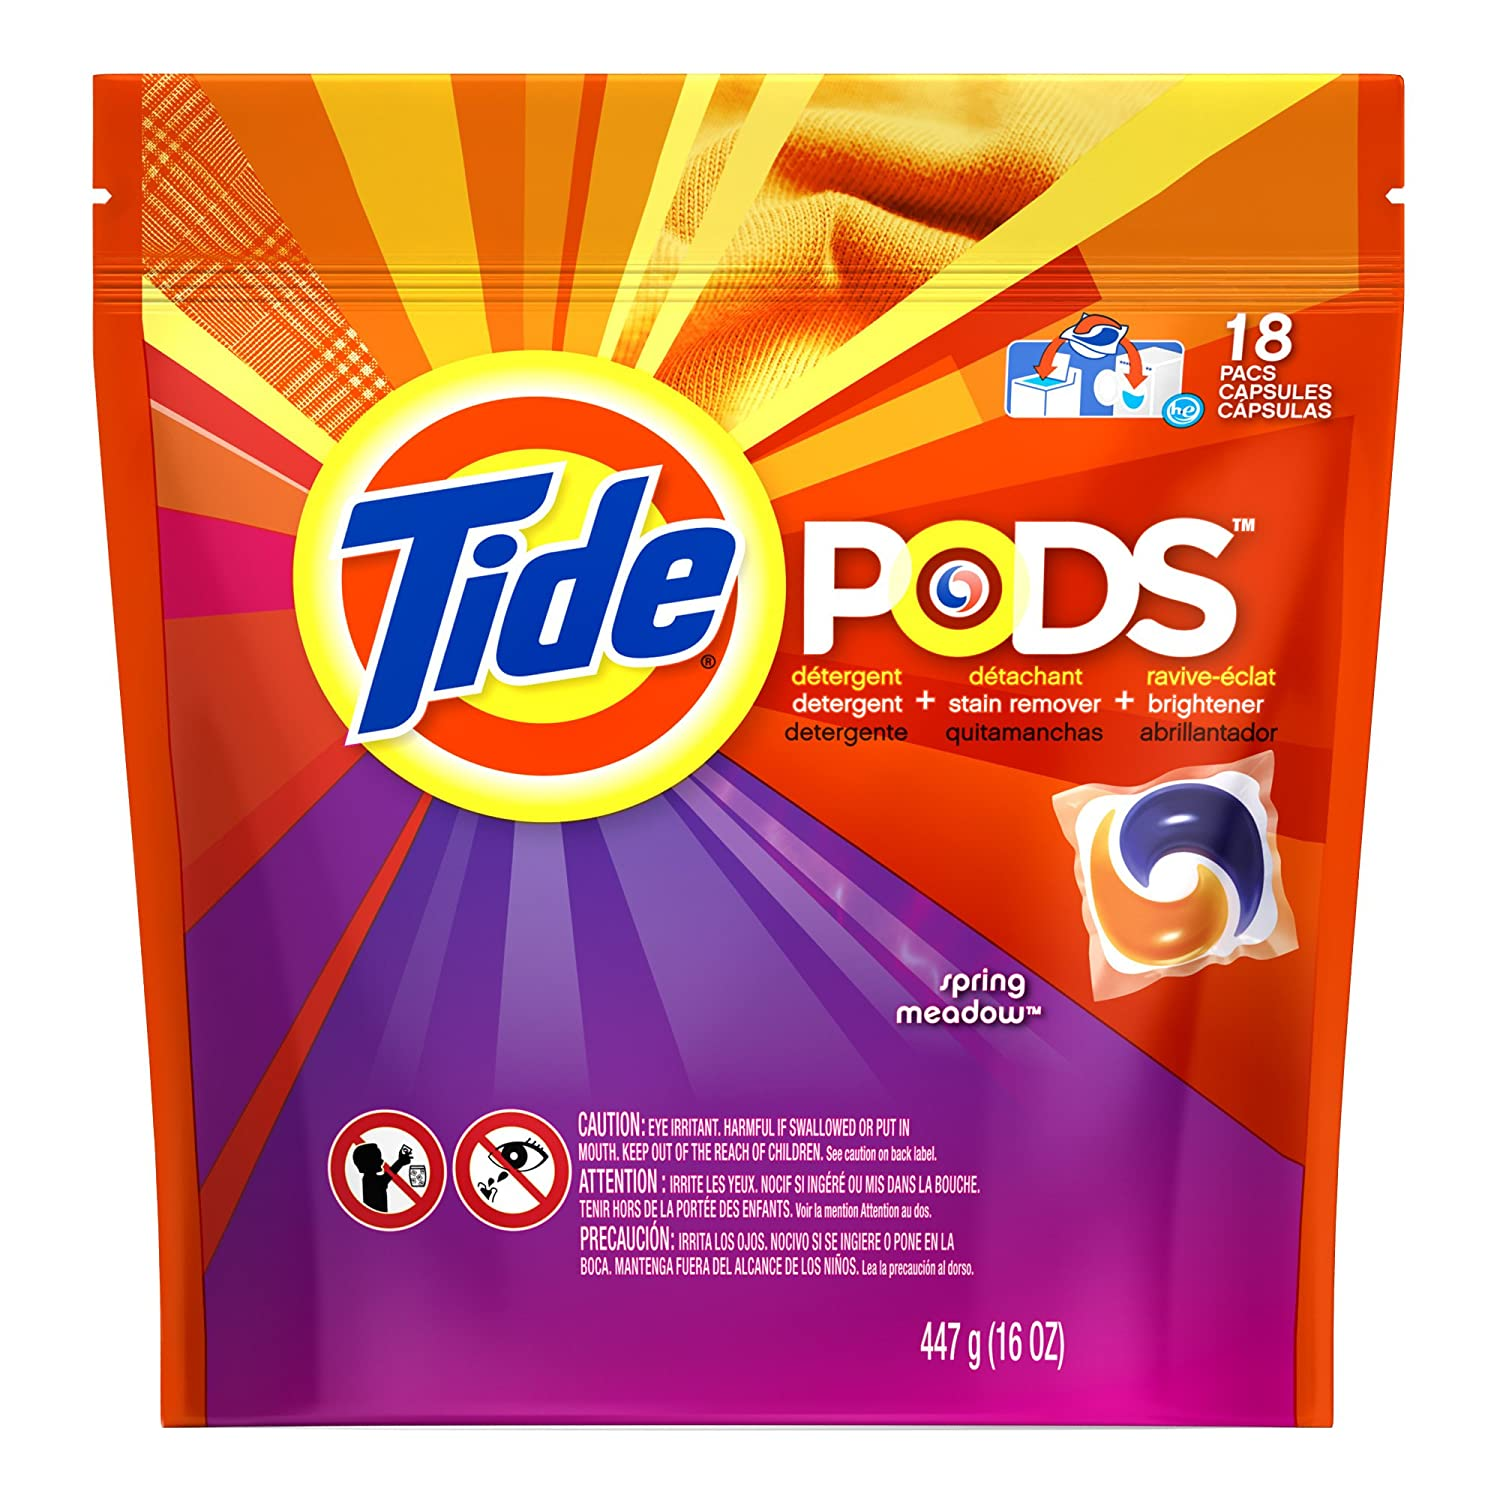 Amazon.com: Tide Pods Laundry Detergent Spring Meadow Scent 18 Count: Health & Personal Care